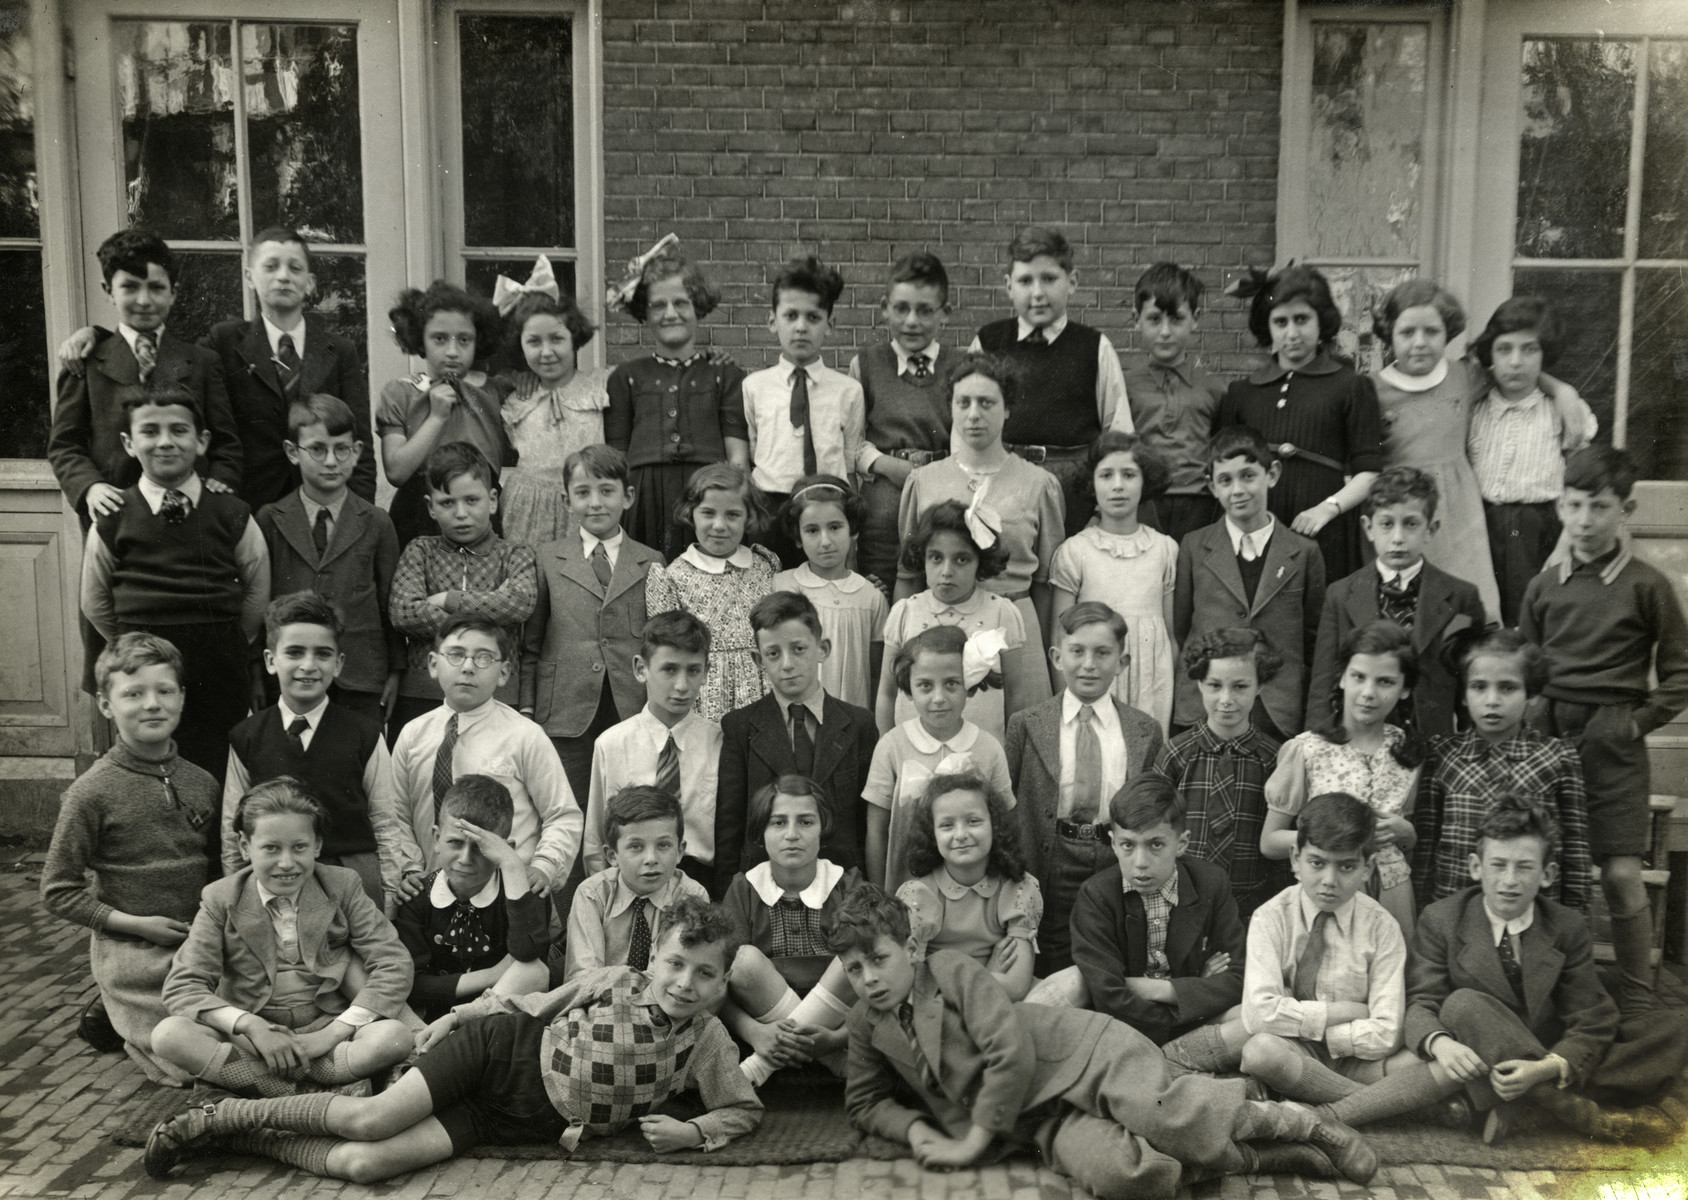 Group portrait of children in the 3rd grade of the Jewish elementary class in Amsterdam.  Among those pictured is Elchanan Tal (front row in a while shirt and tie).